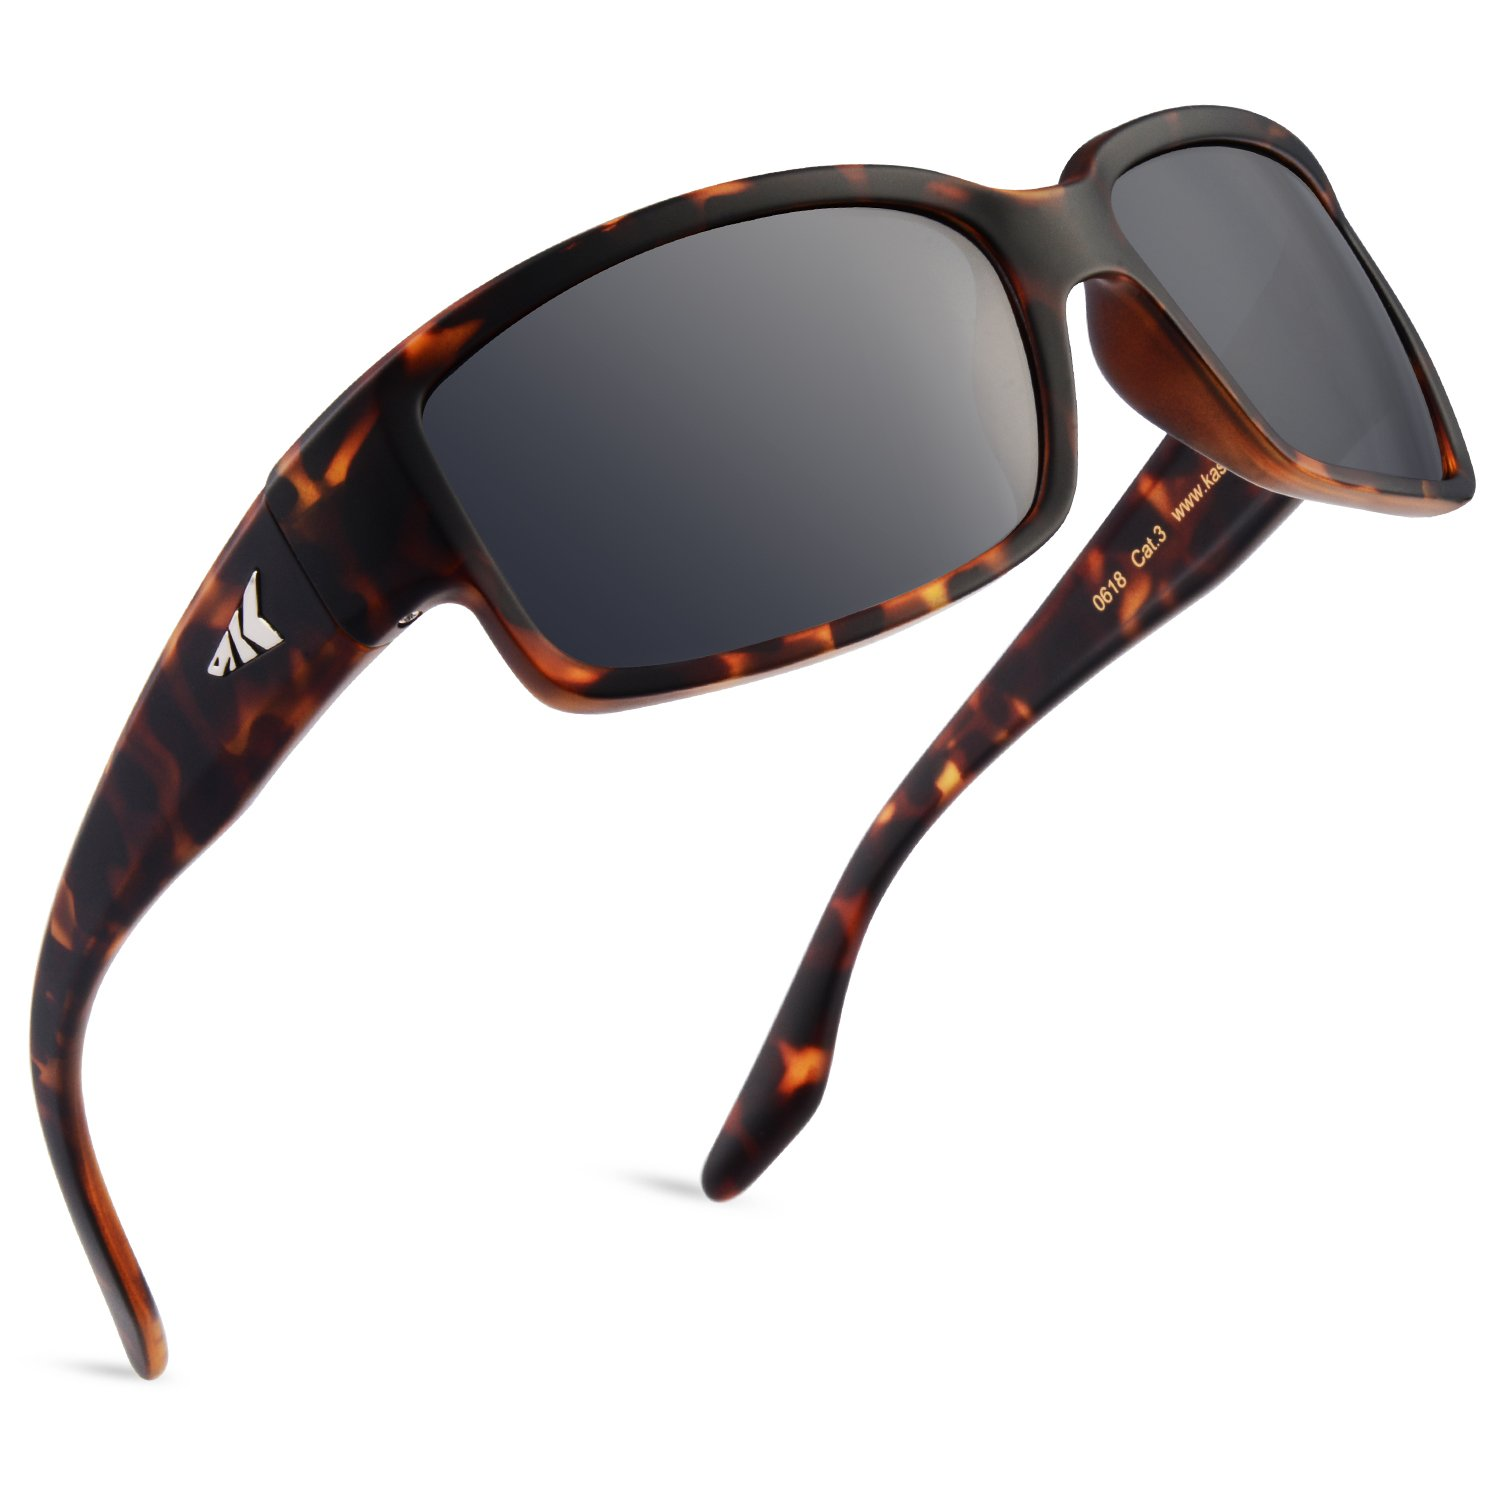 d4fb43c6c3 Best Rated in Sunglasses   Helpful Customer Reviews - Amazon.com